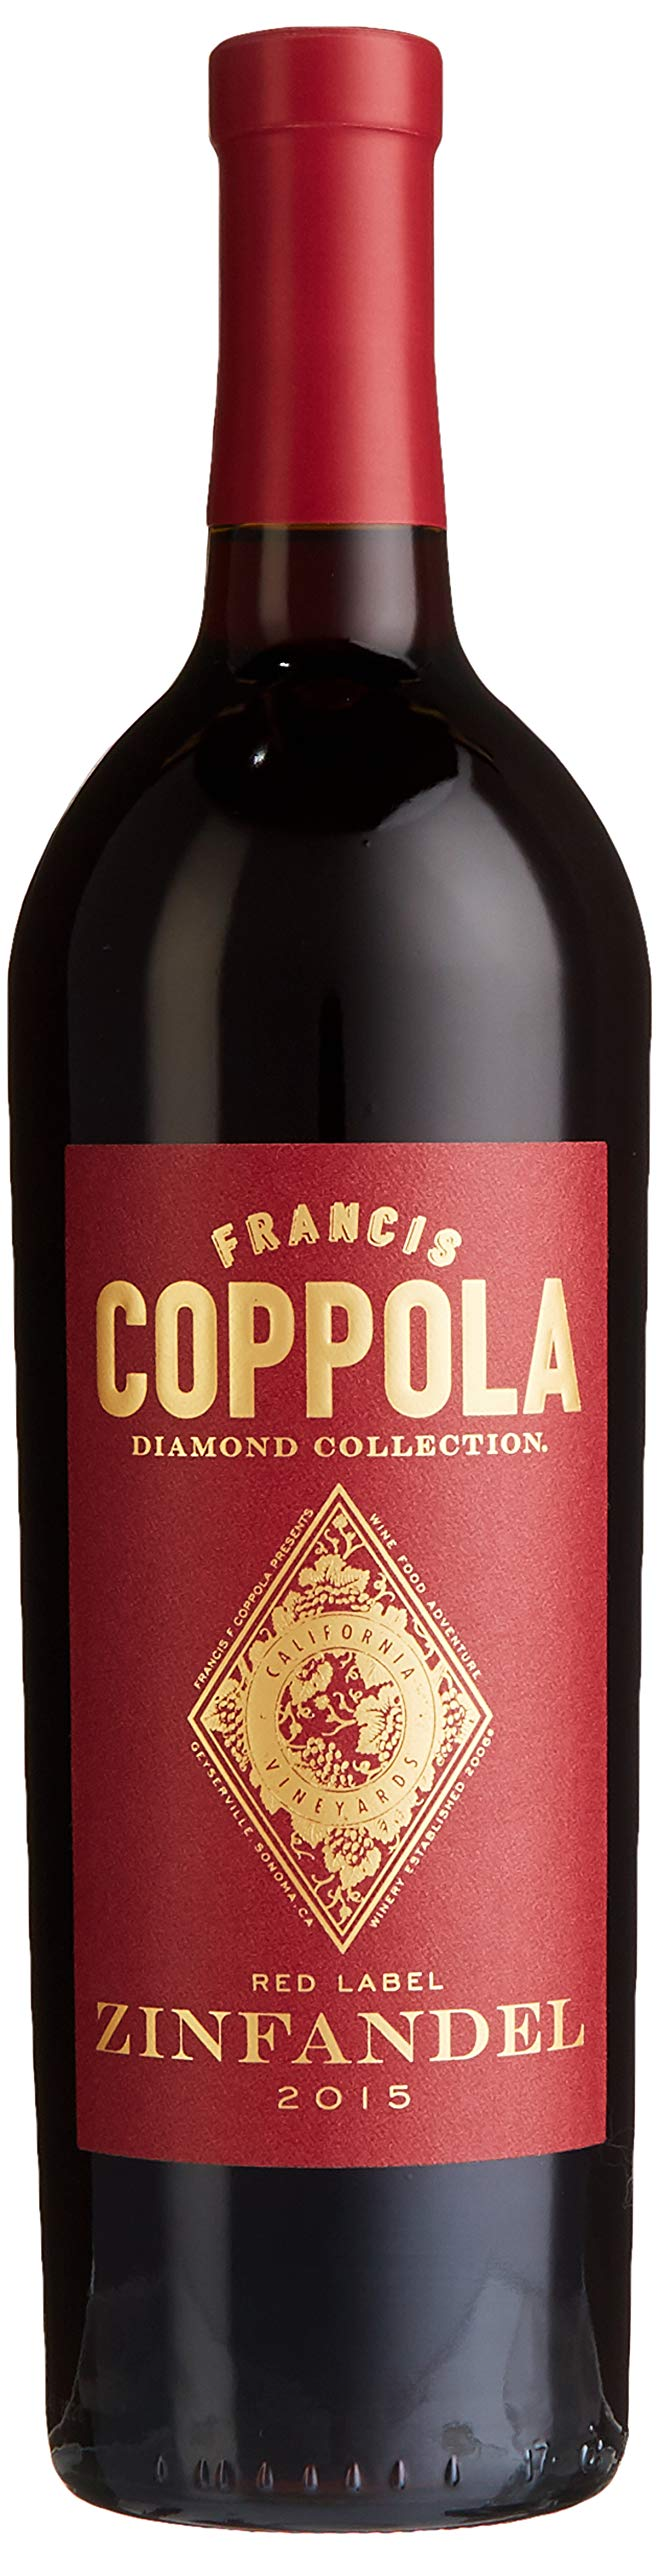 Francis-Ford-Coppola-Winery-Diamond-Collection-Zinfandel-20142015-1-x-075-l